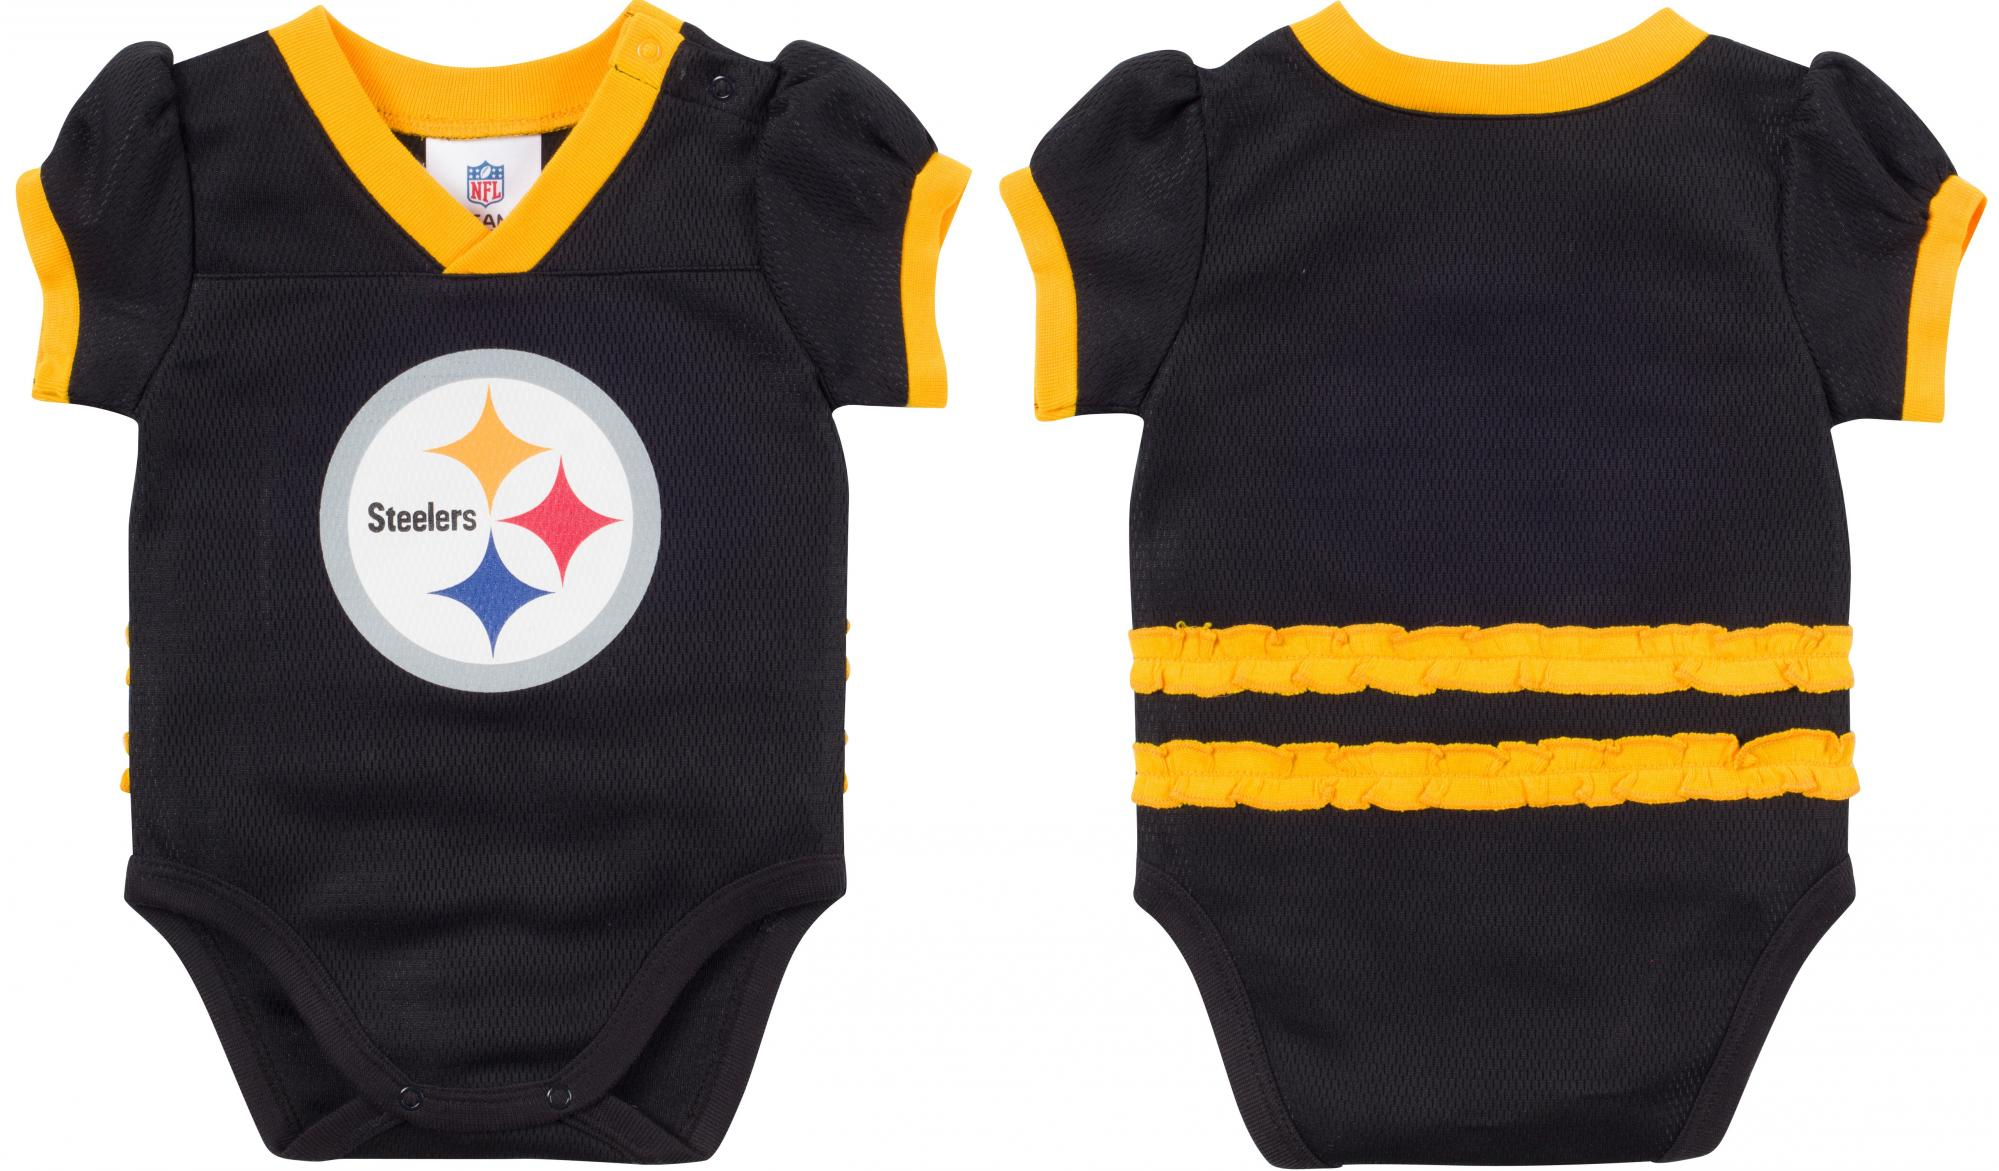 steelers-baby-rufflebutt-player-jersey-bodysuit-1680-all.jpg